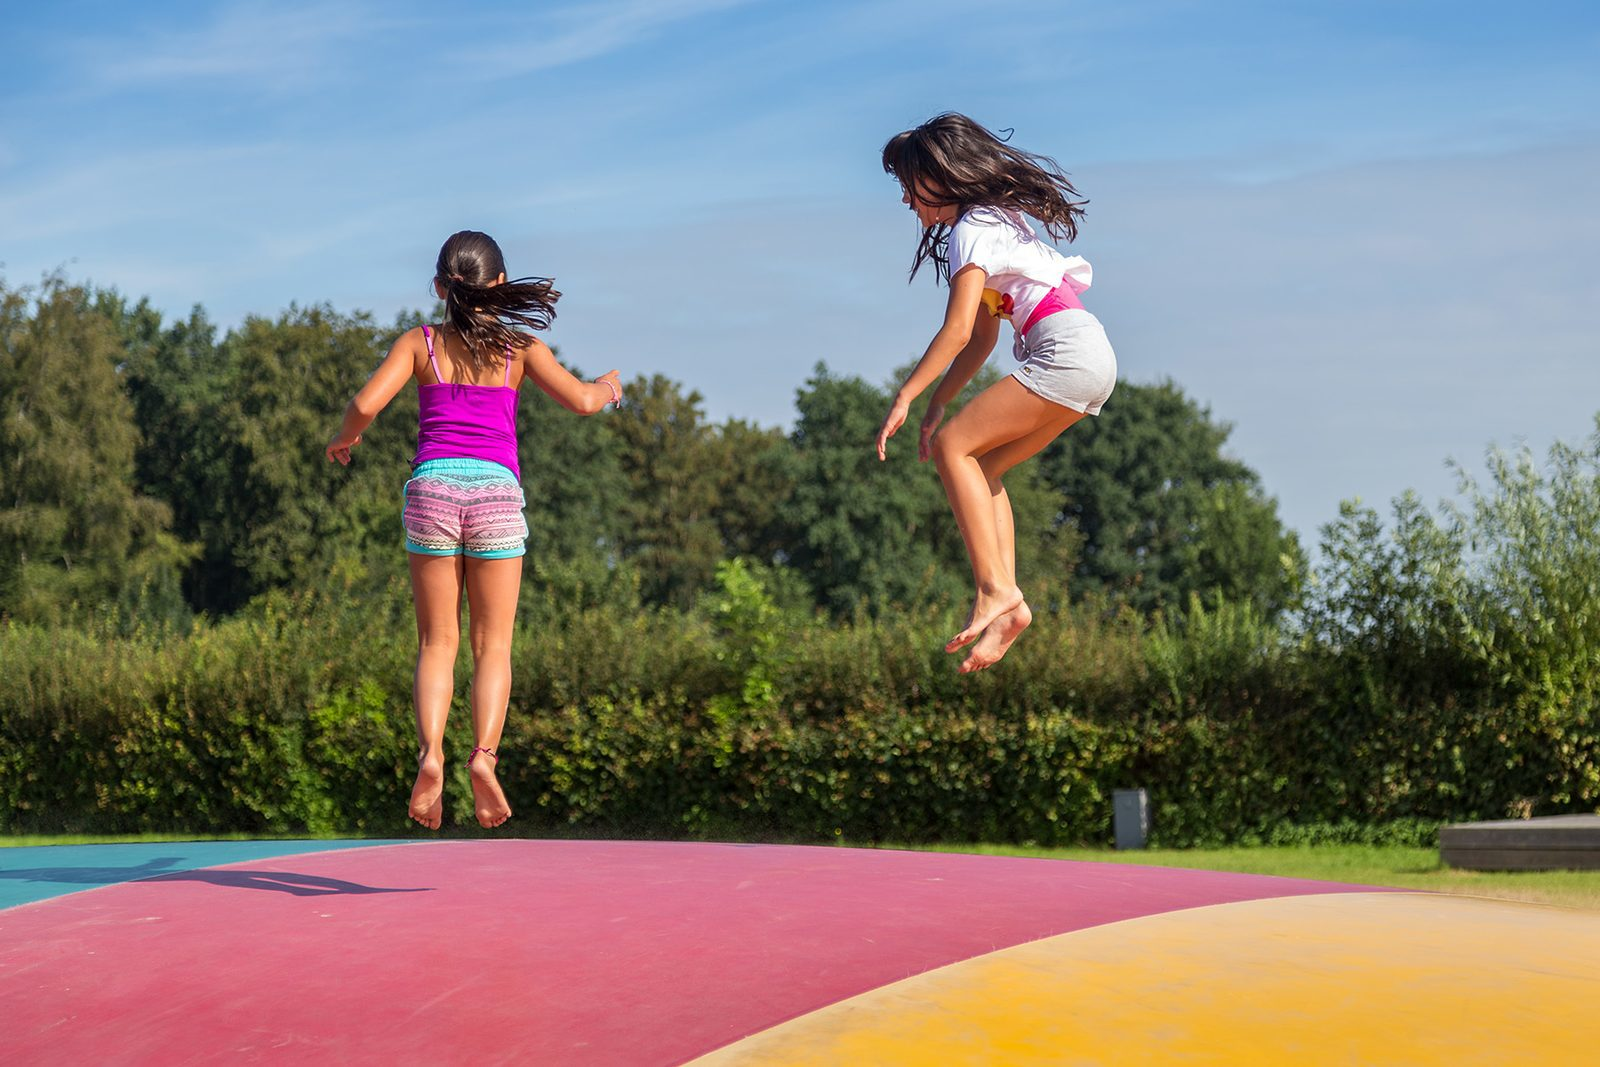 Airtrampolines